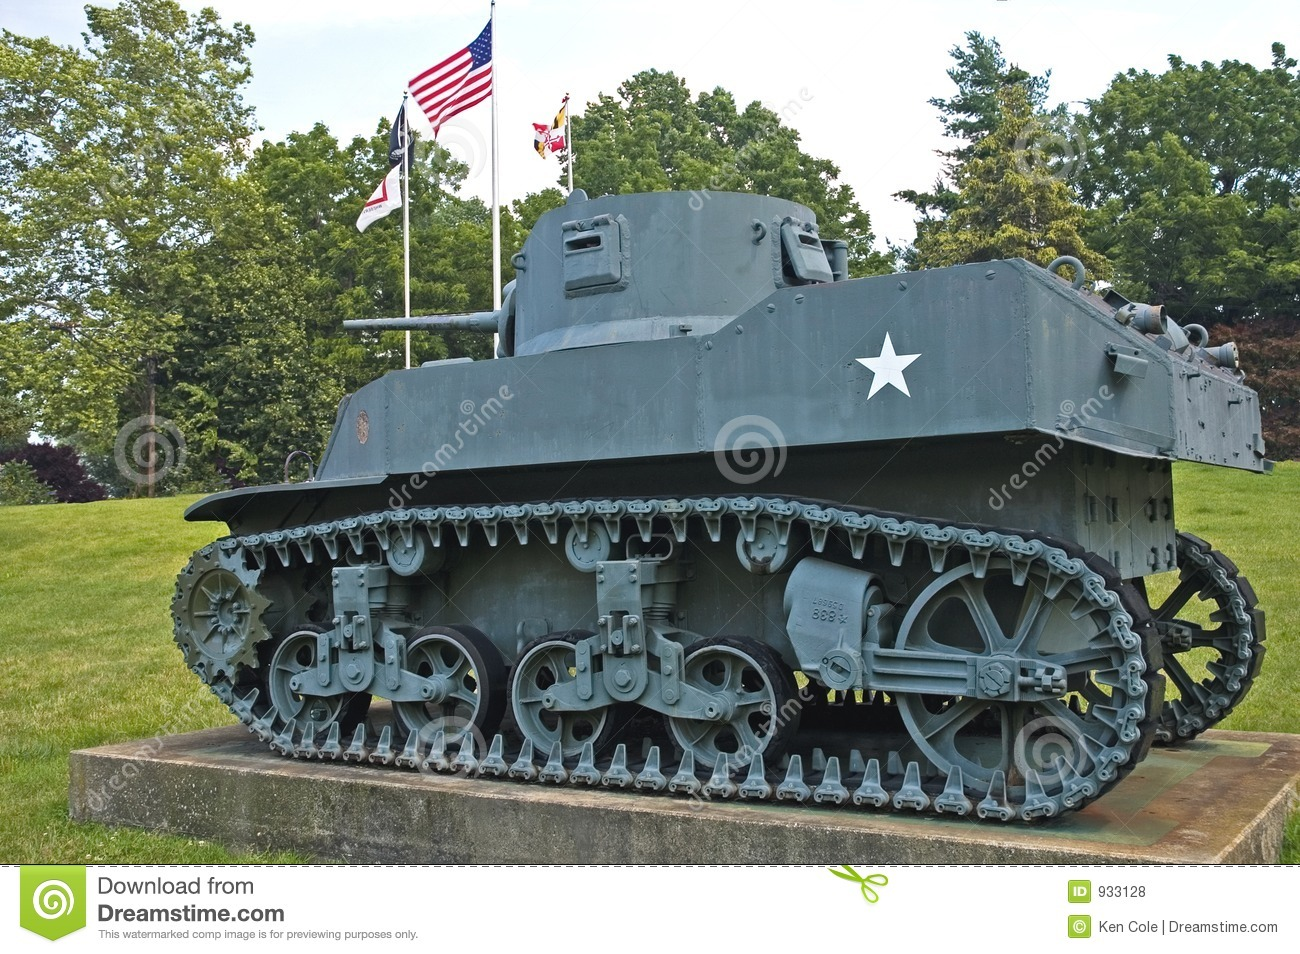 Armored Vehicles For Sale >> US Army Tank - Vintage WWII Stock Photo - Image of fire, assault: 933128